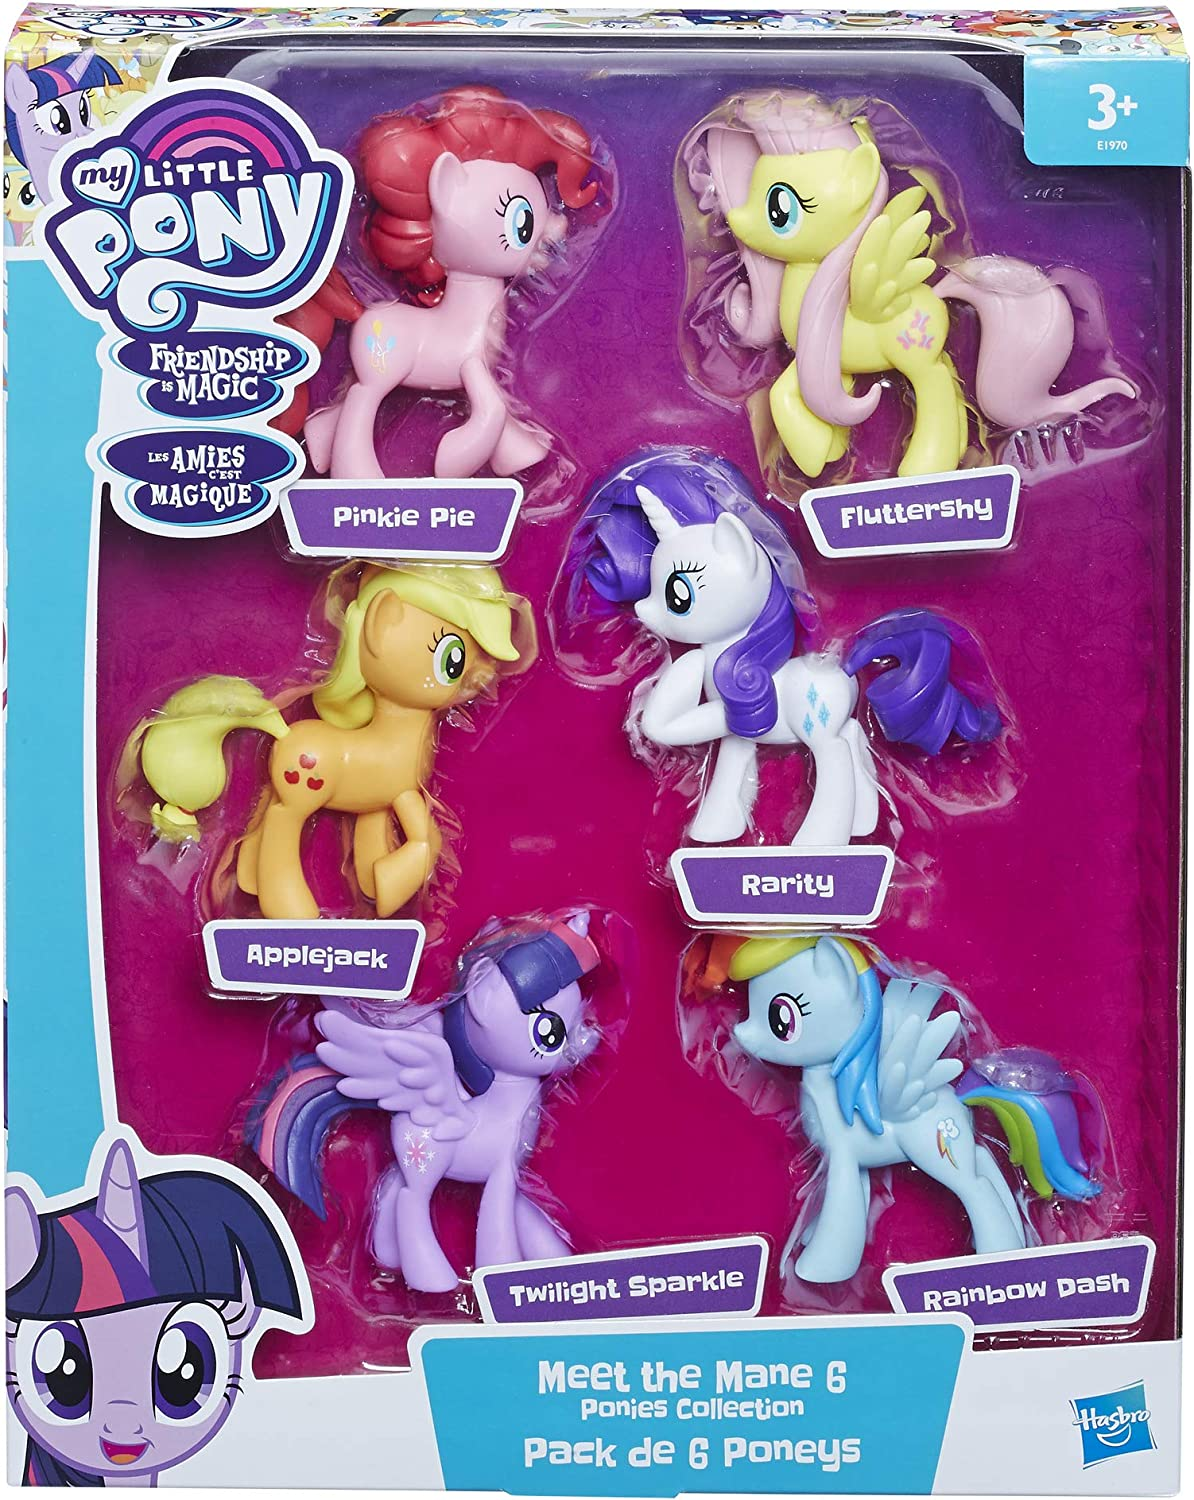 My Little Pony E1970 Meet The Mane 6 Ponies Collection, Multicolor